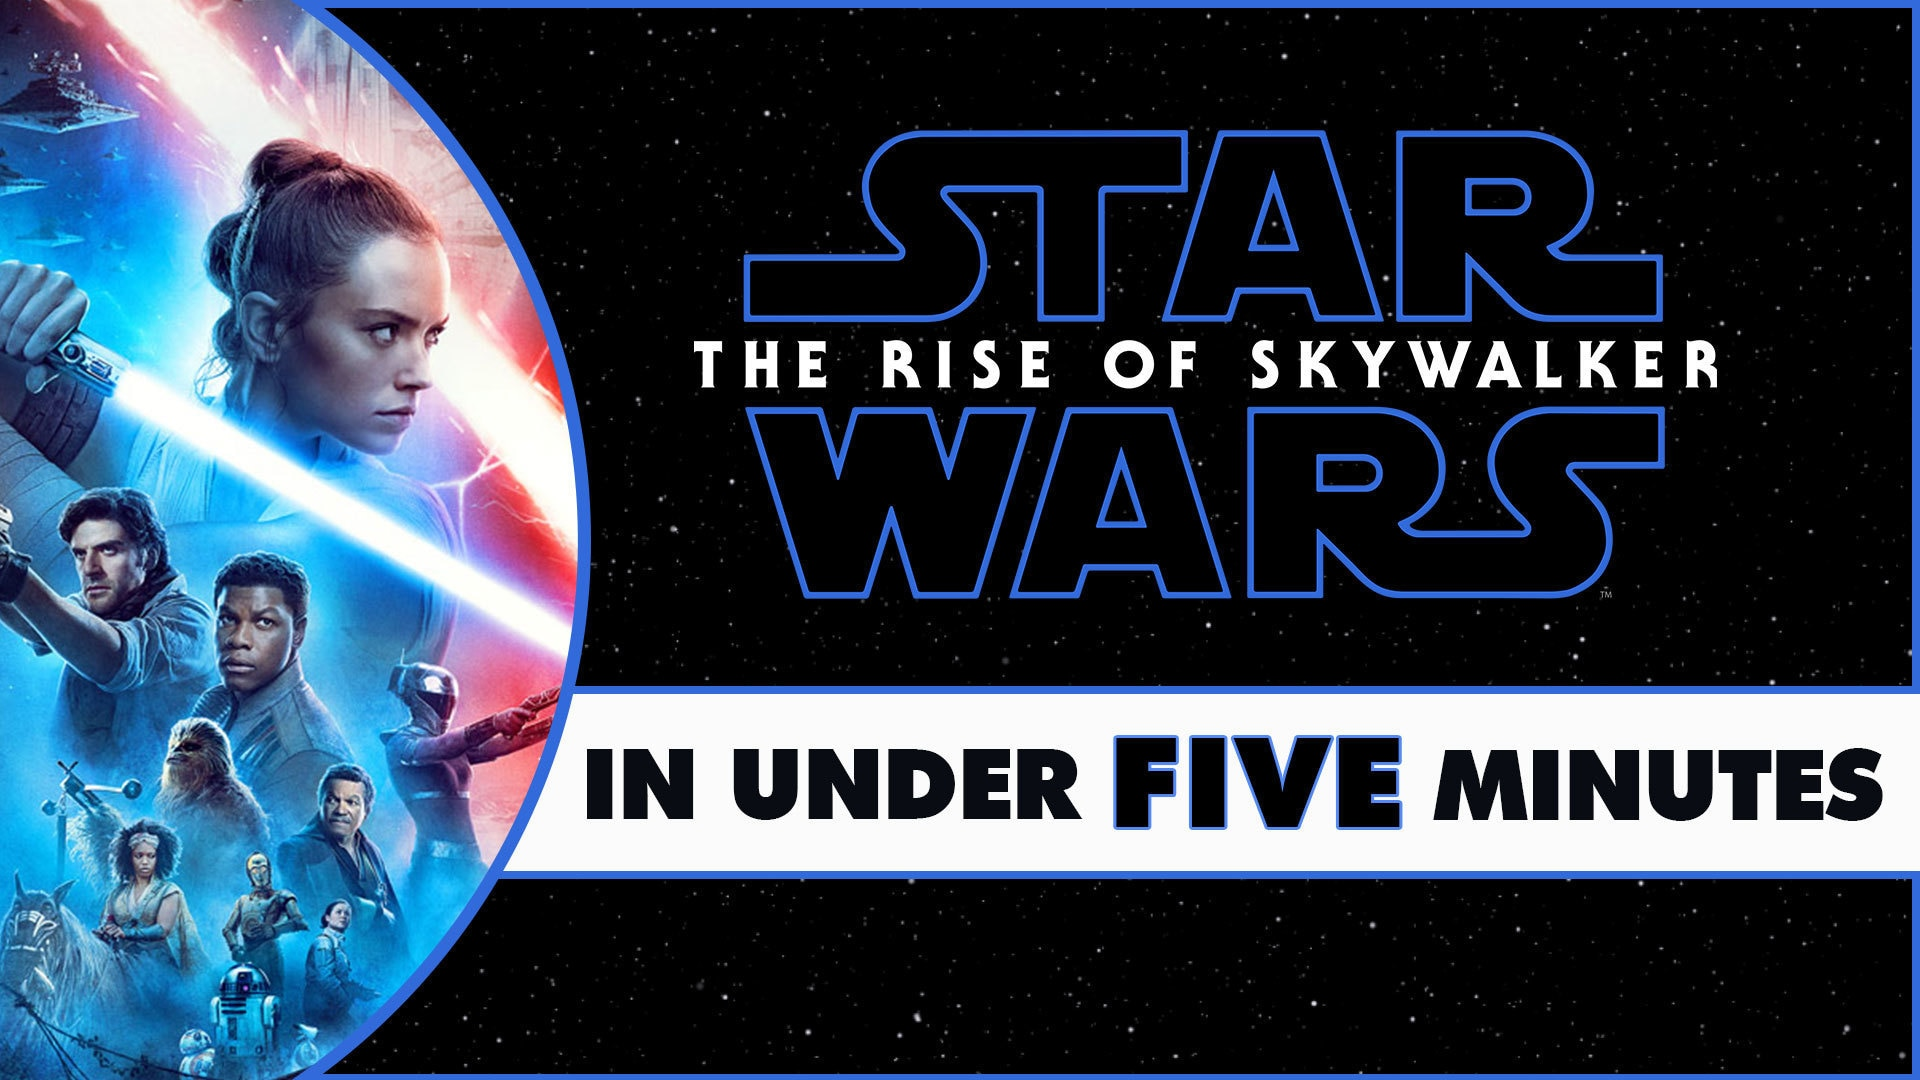 Star Wars: The Rise of Skywalker in Under Five Minutes